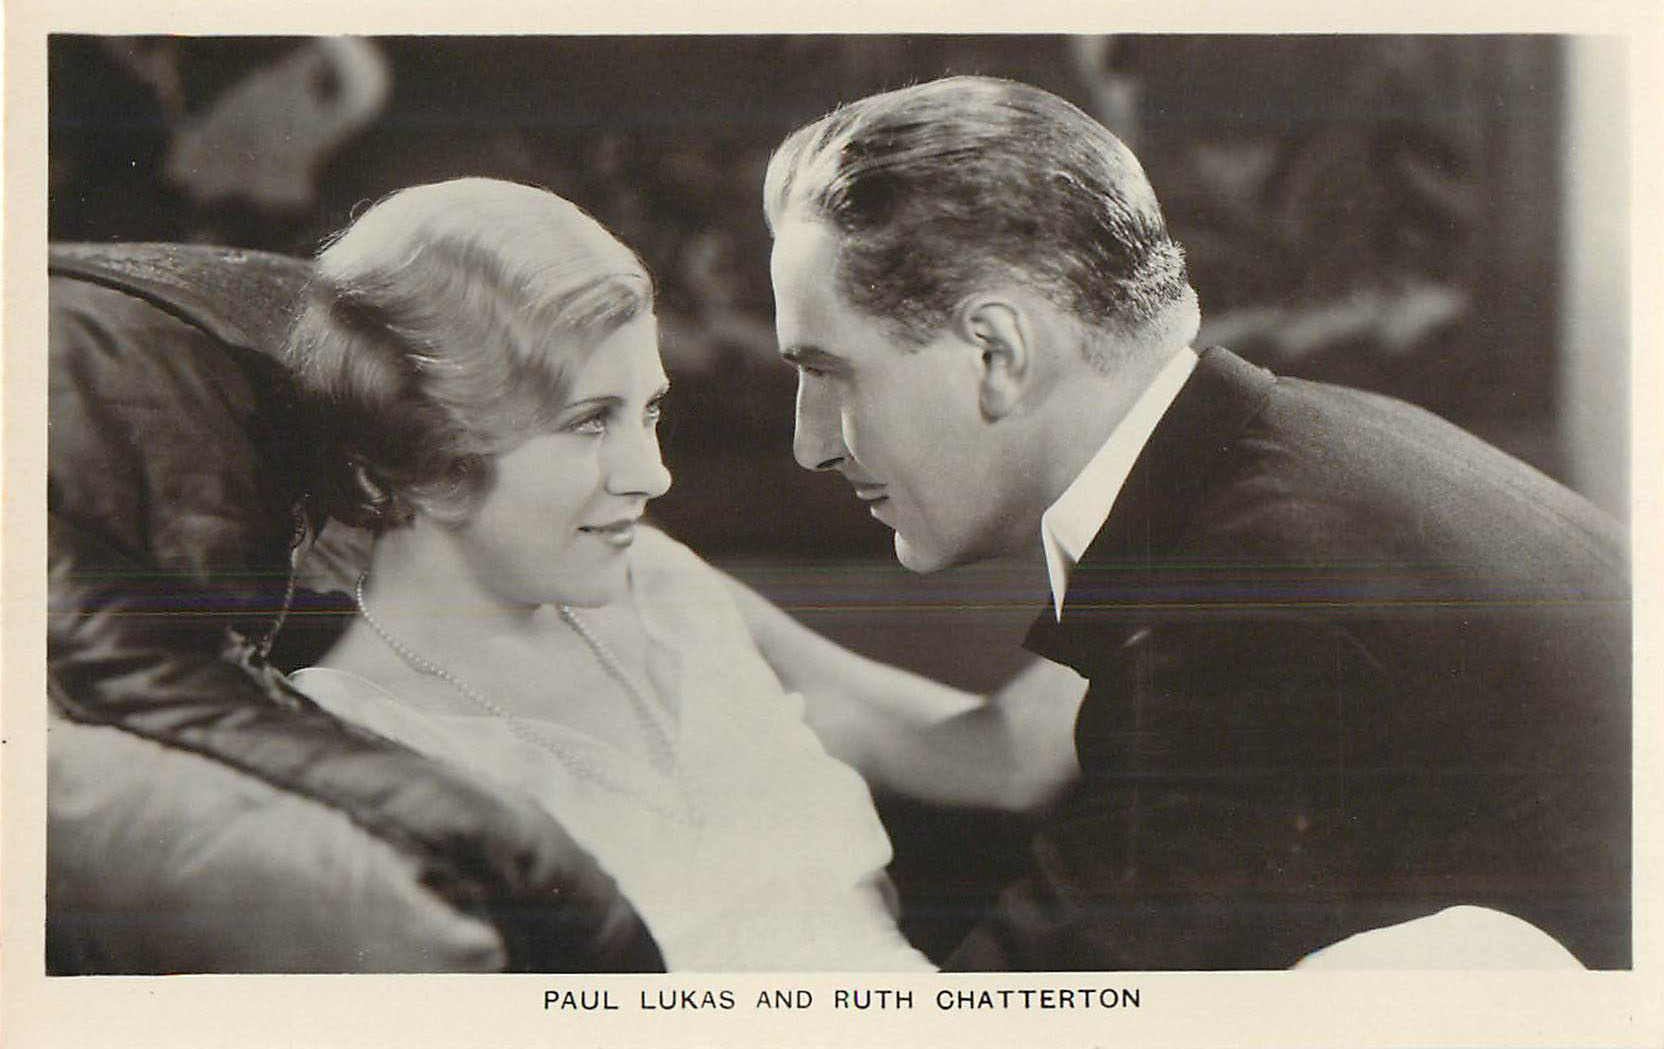 Paul Lukas & Ruth Chatterton